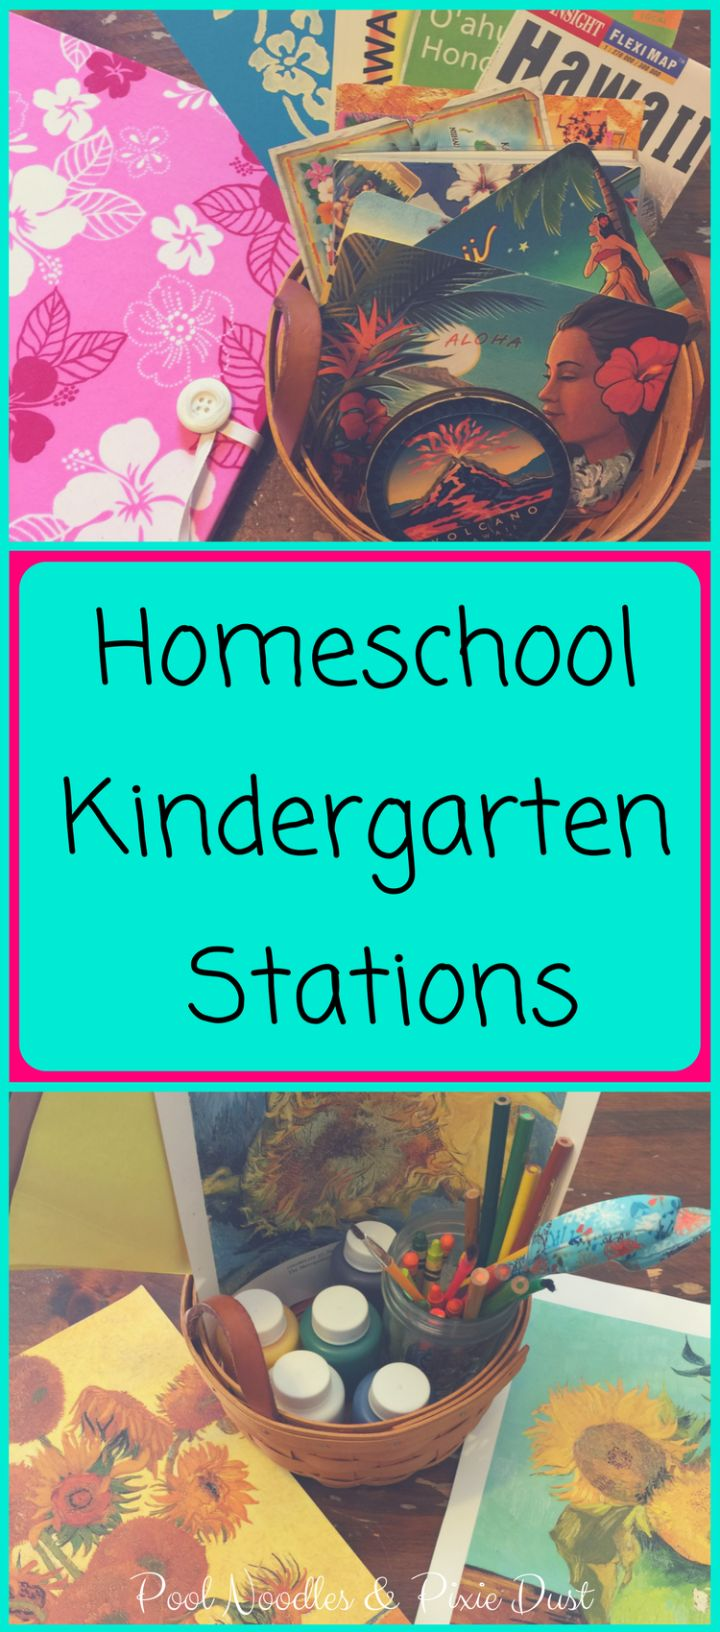 Homeschool Kindergarten Stations. Help for homeschooling multiple ages with purposeful learning for little learners.